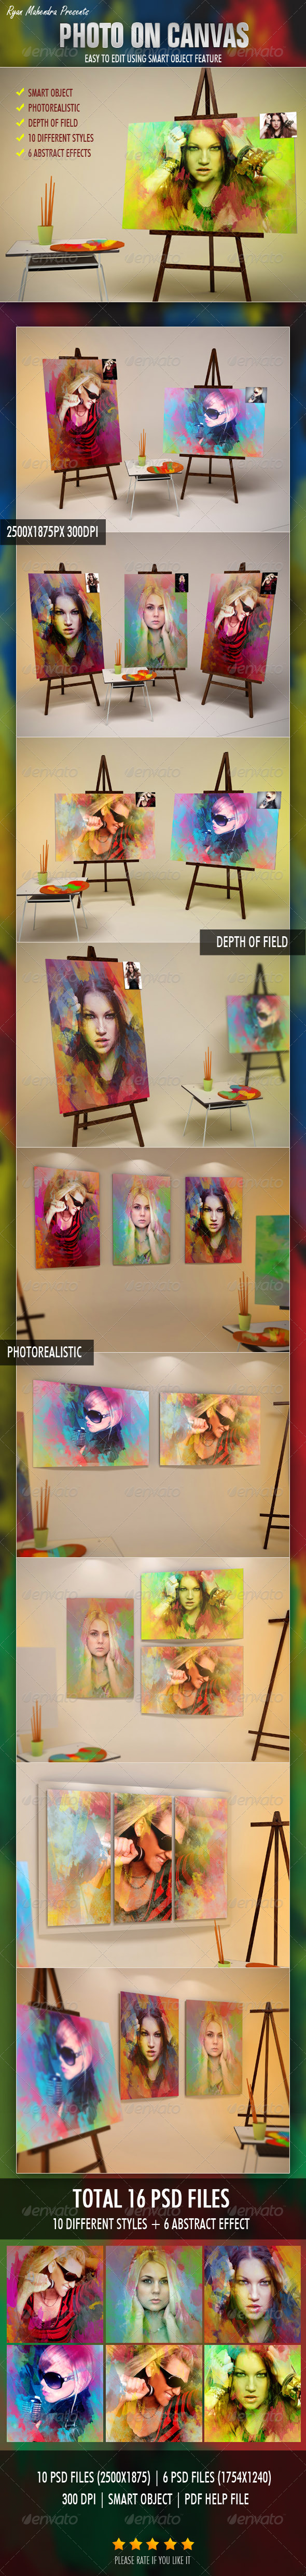 Photo On Canvas - Photo Templates Graphics